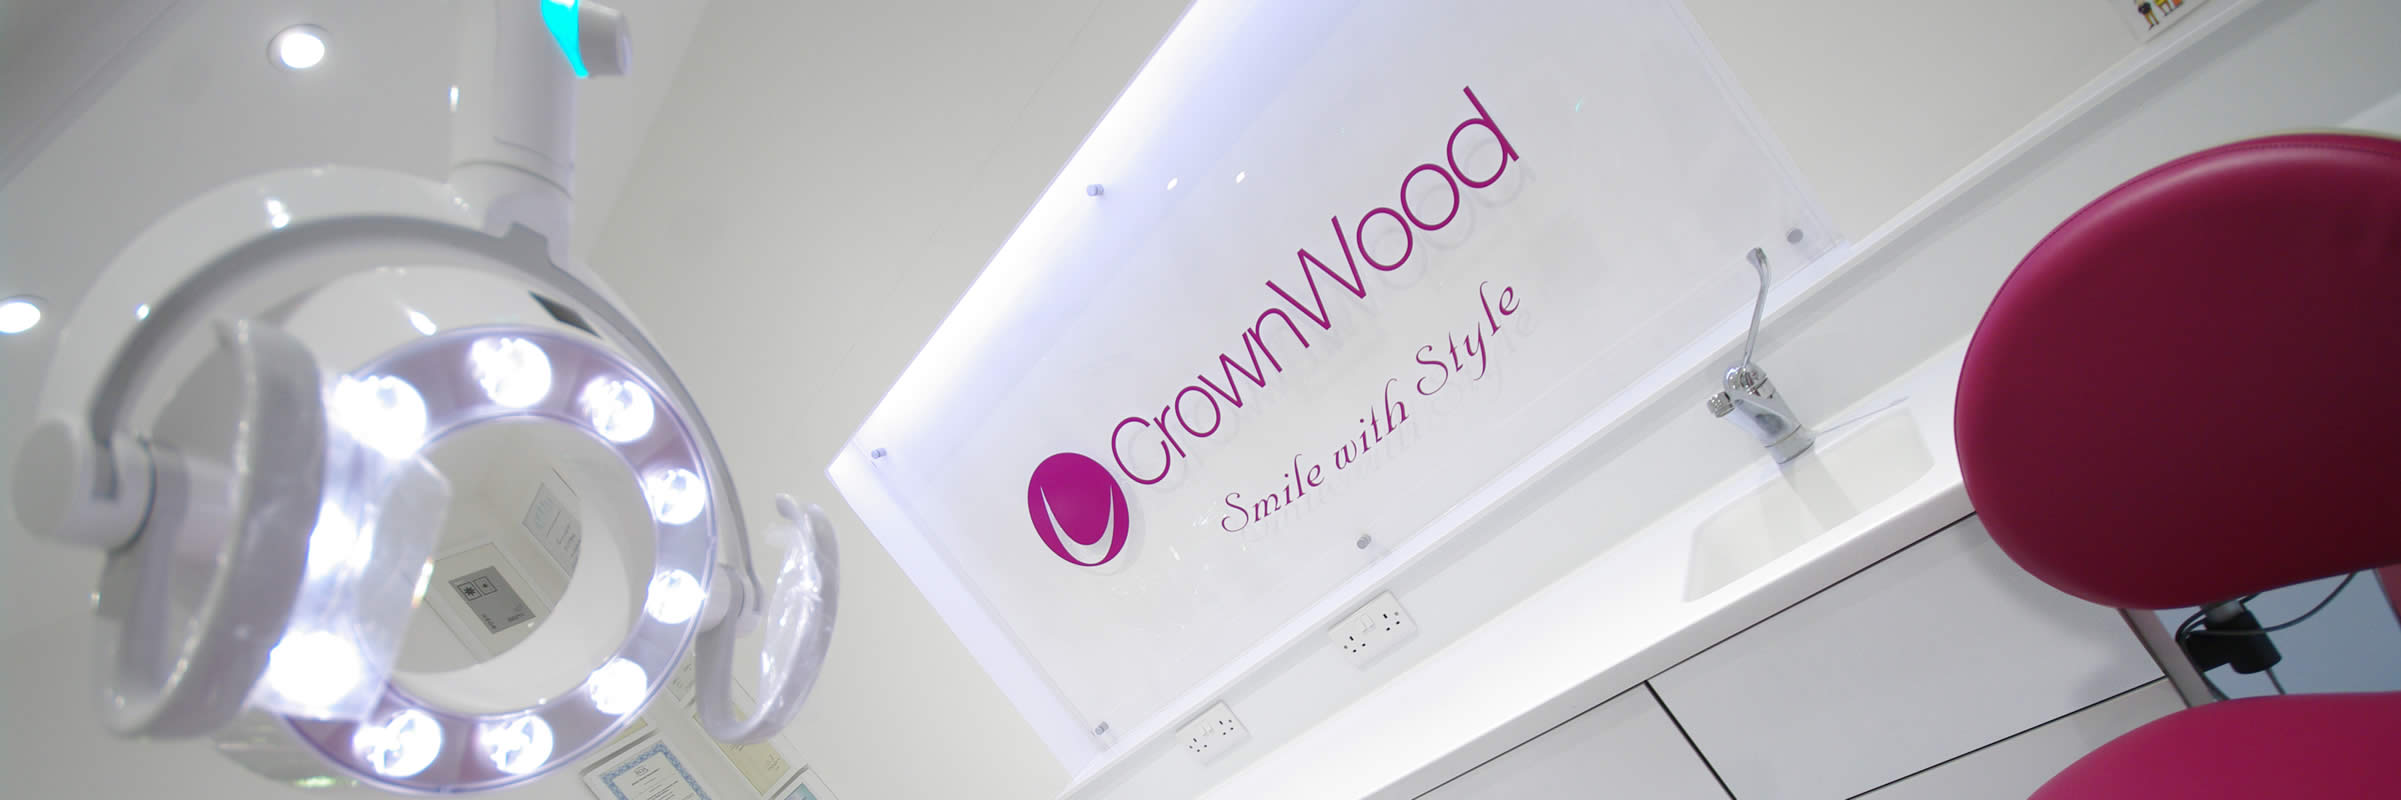 Examples of the work carried out at Crownwood Dental Practice in Bracknell